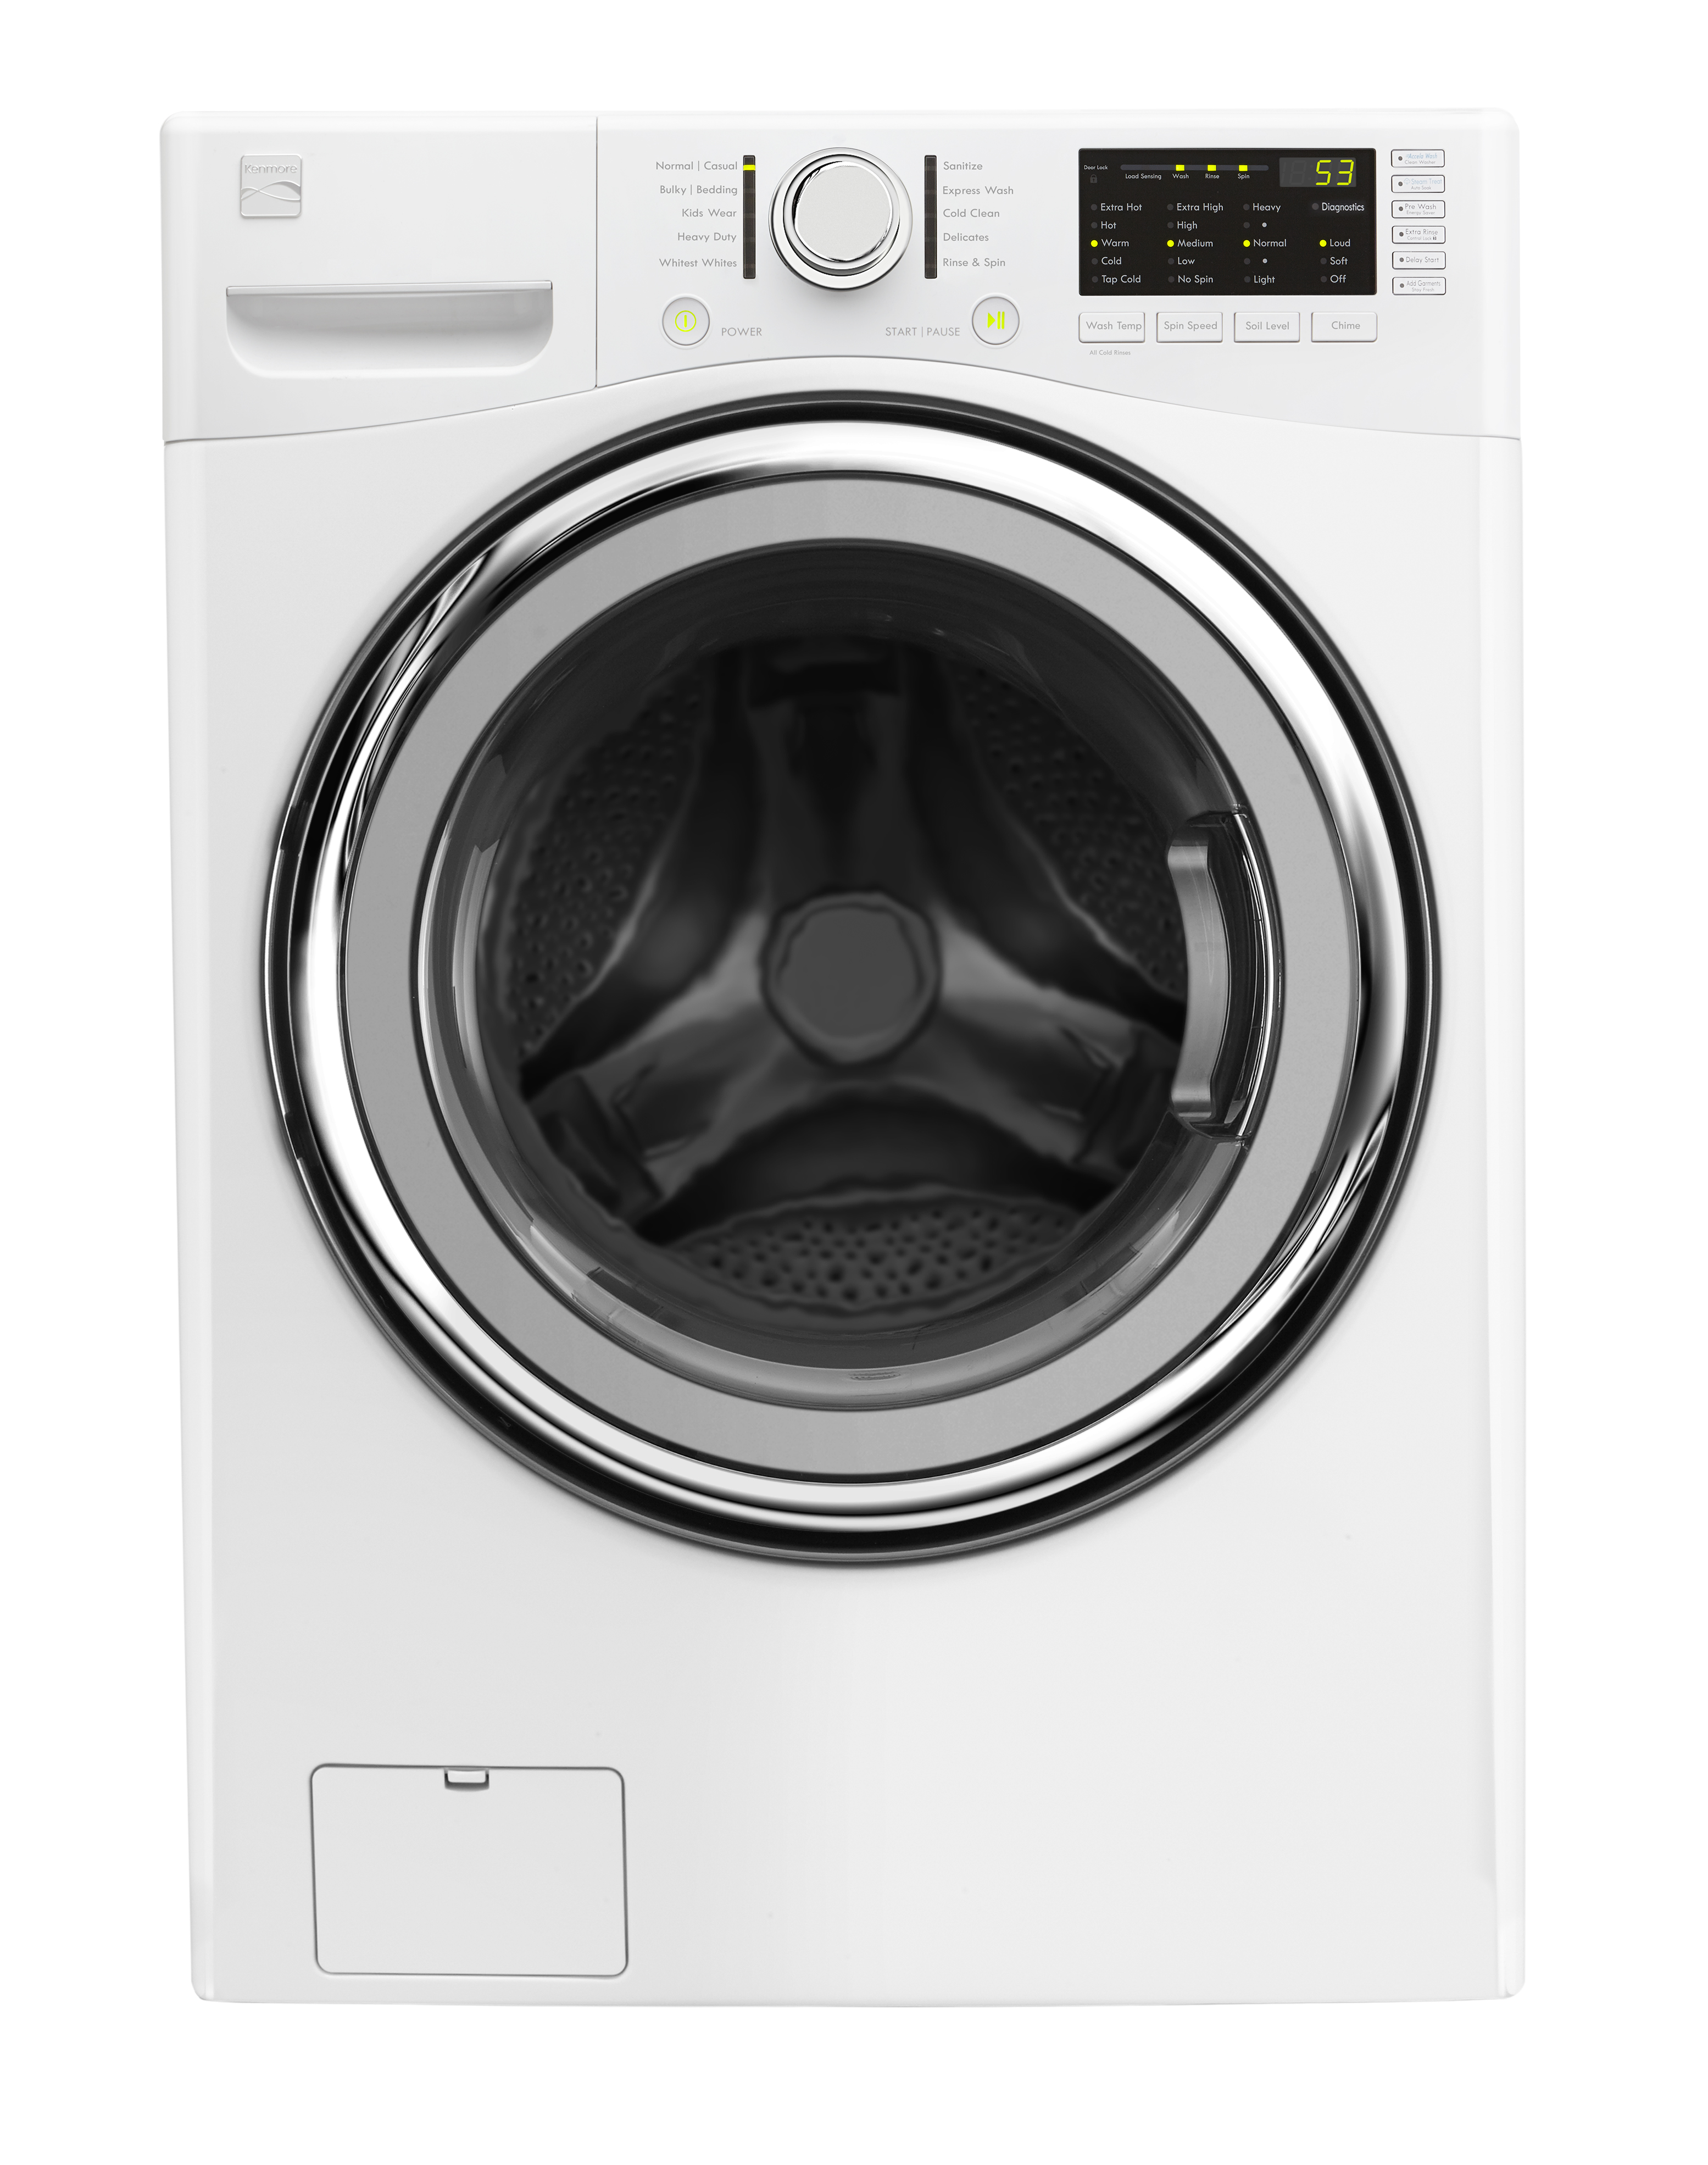 Kenmore 500 washer kenmore elite ii i took these crappy for Kenmore washer